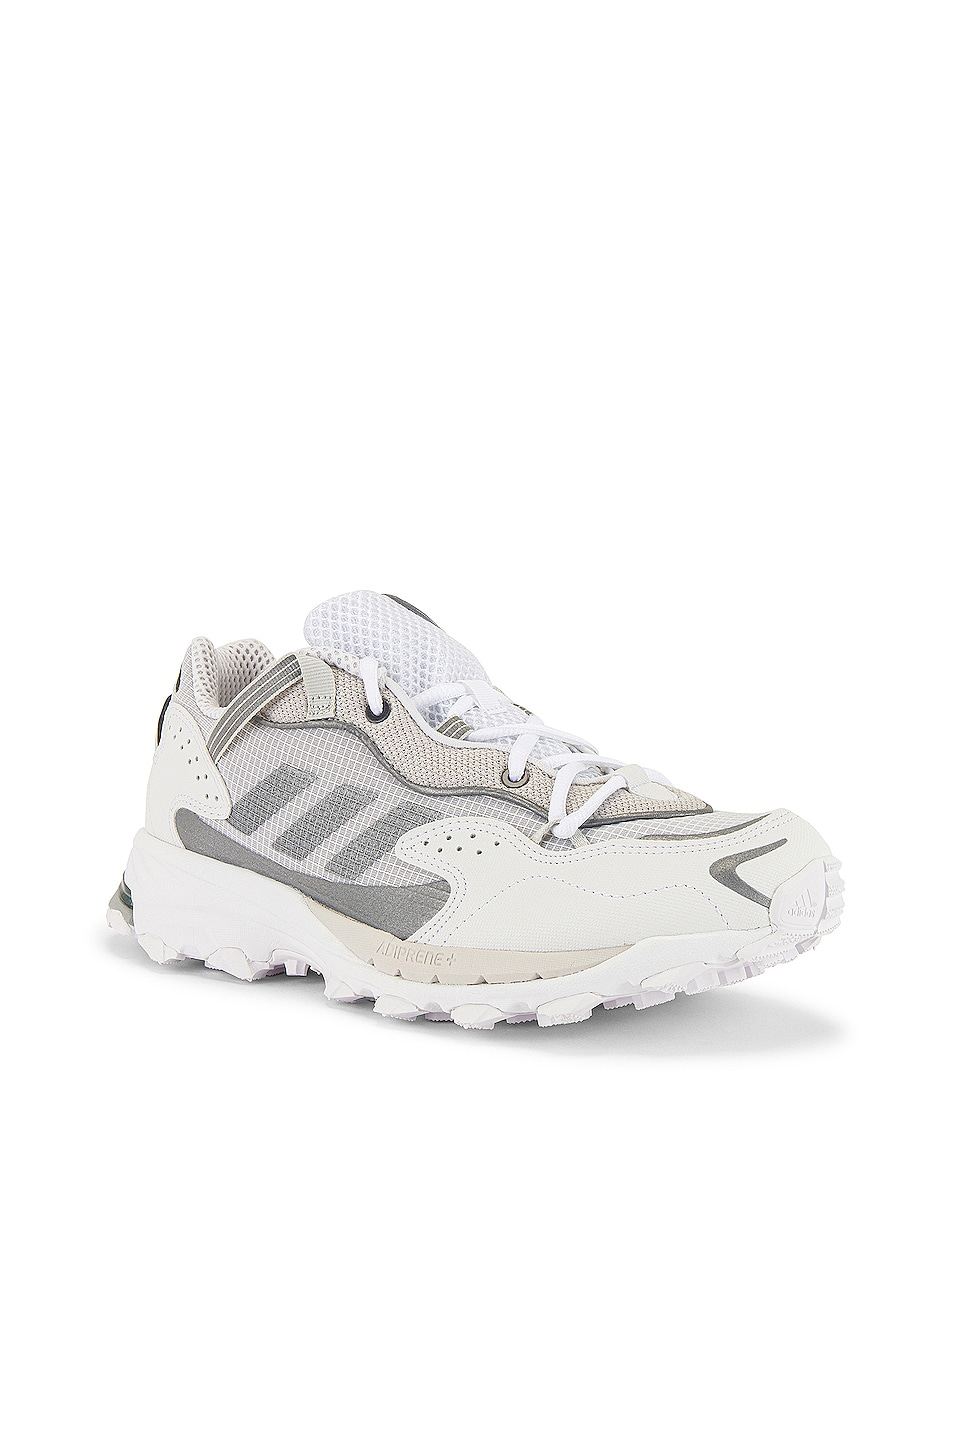 Image 1 of adidas STMNT Response Hoverturf GF6100AM in Core White 076A & Silver Met